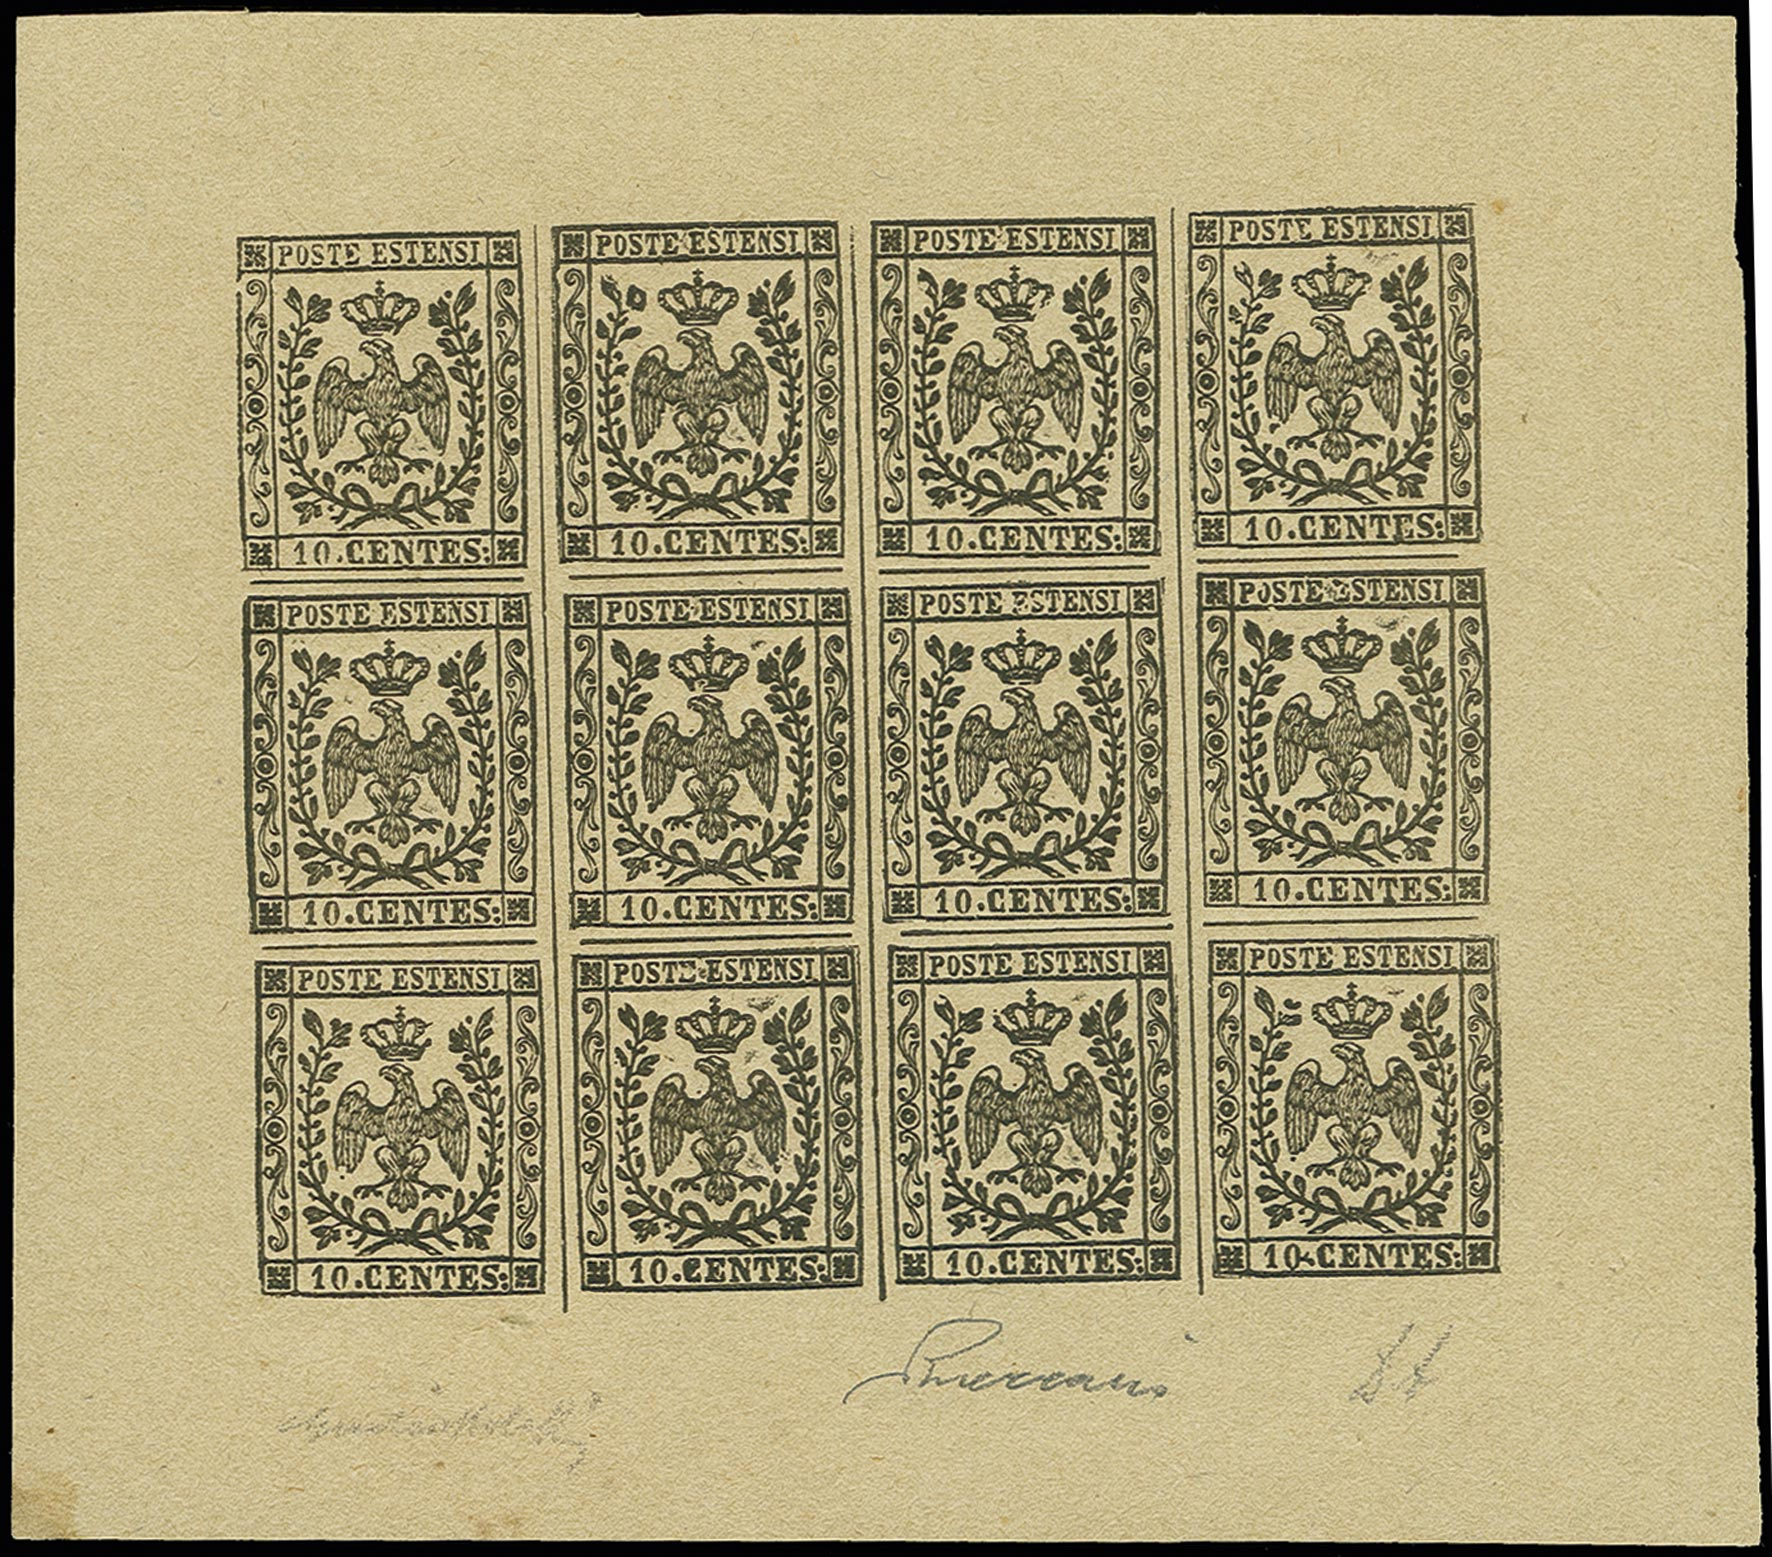 Lot# 3616 Sale #3012 H.R. Harmer | Fine Stamp Auctions